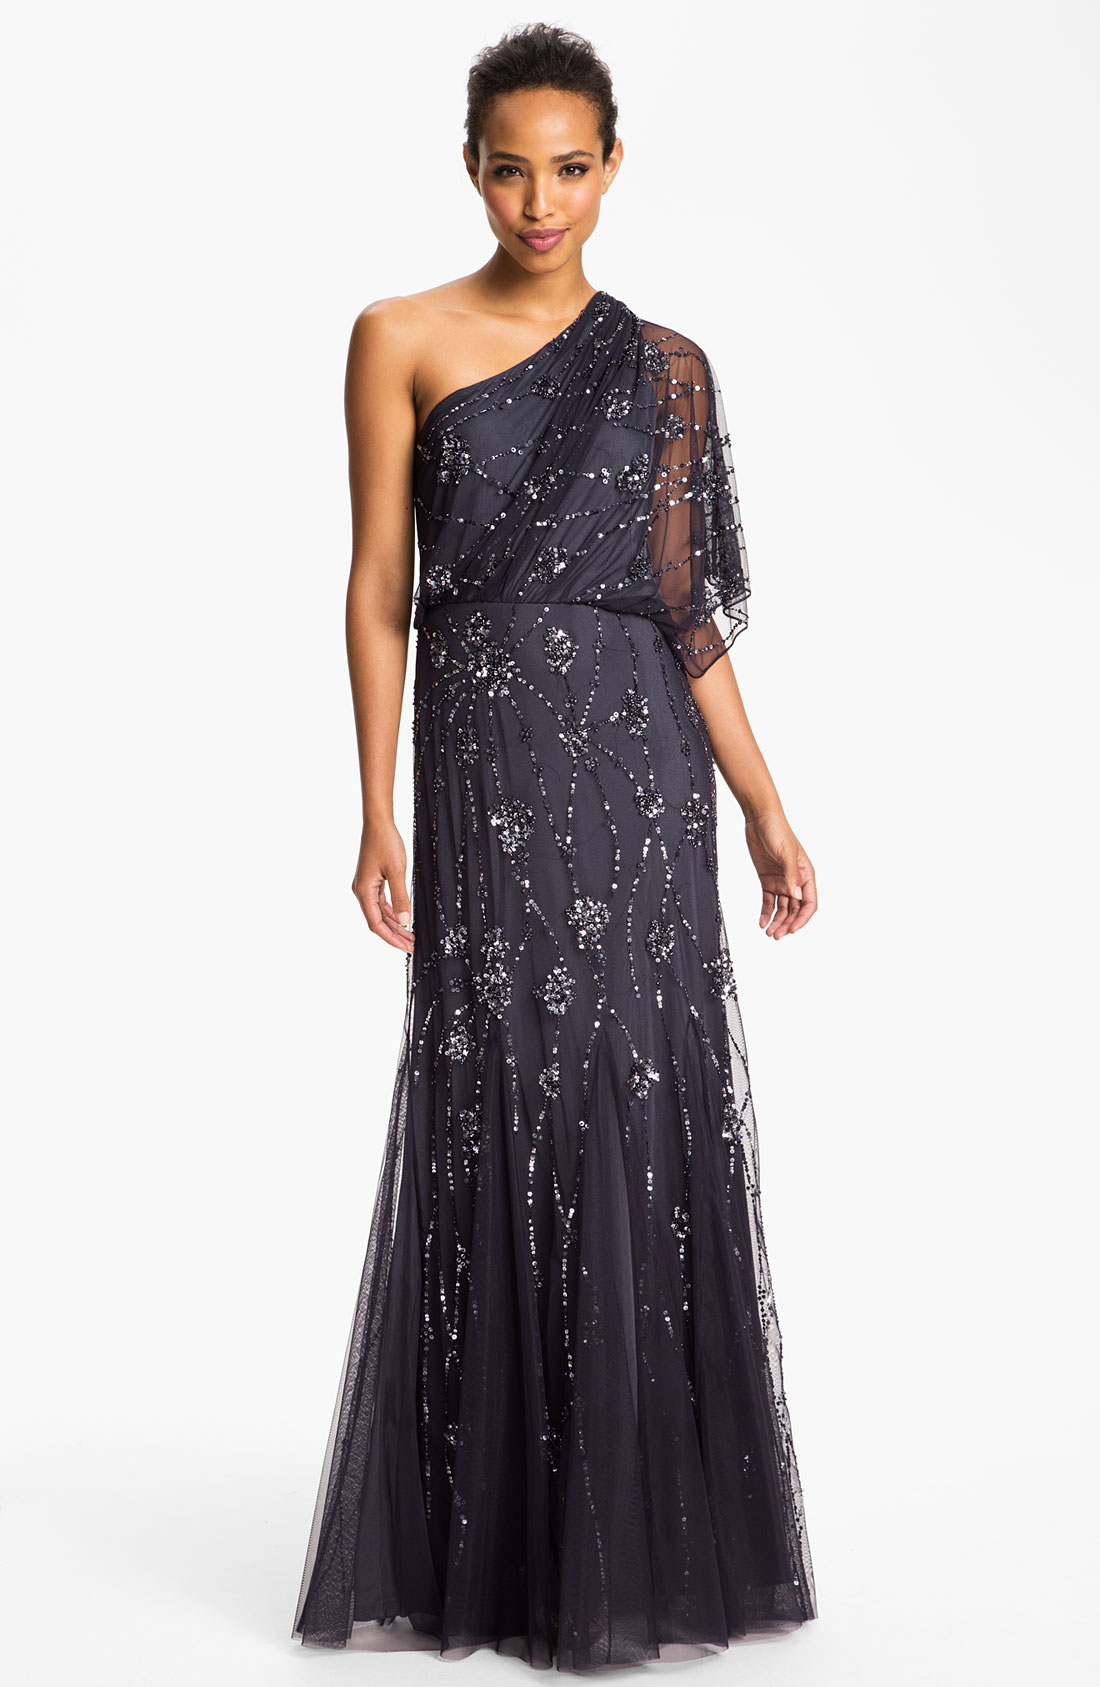 Soulmates - Beaded Embroidered Evening Gown | CoutureCandyOver 14 Years in Fashion· A+ Rated BBB· New Dresses Added Daily.